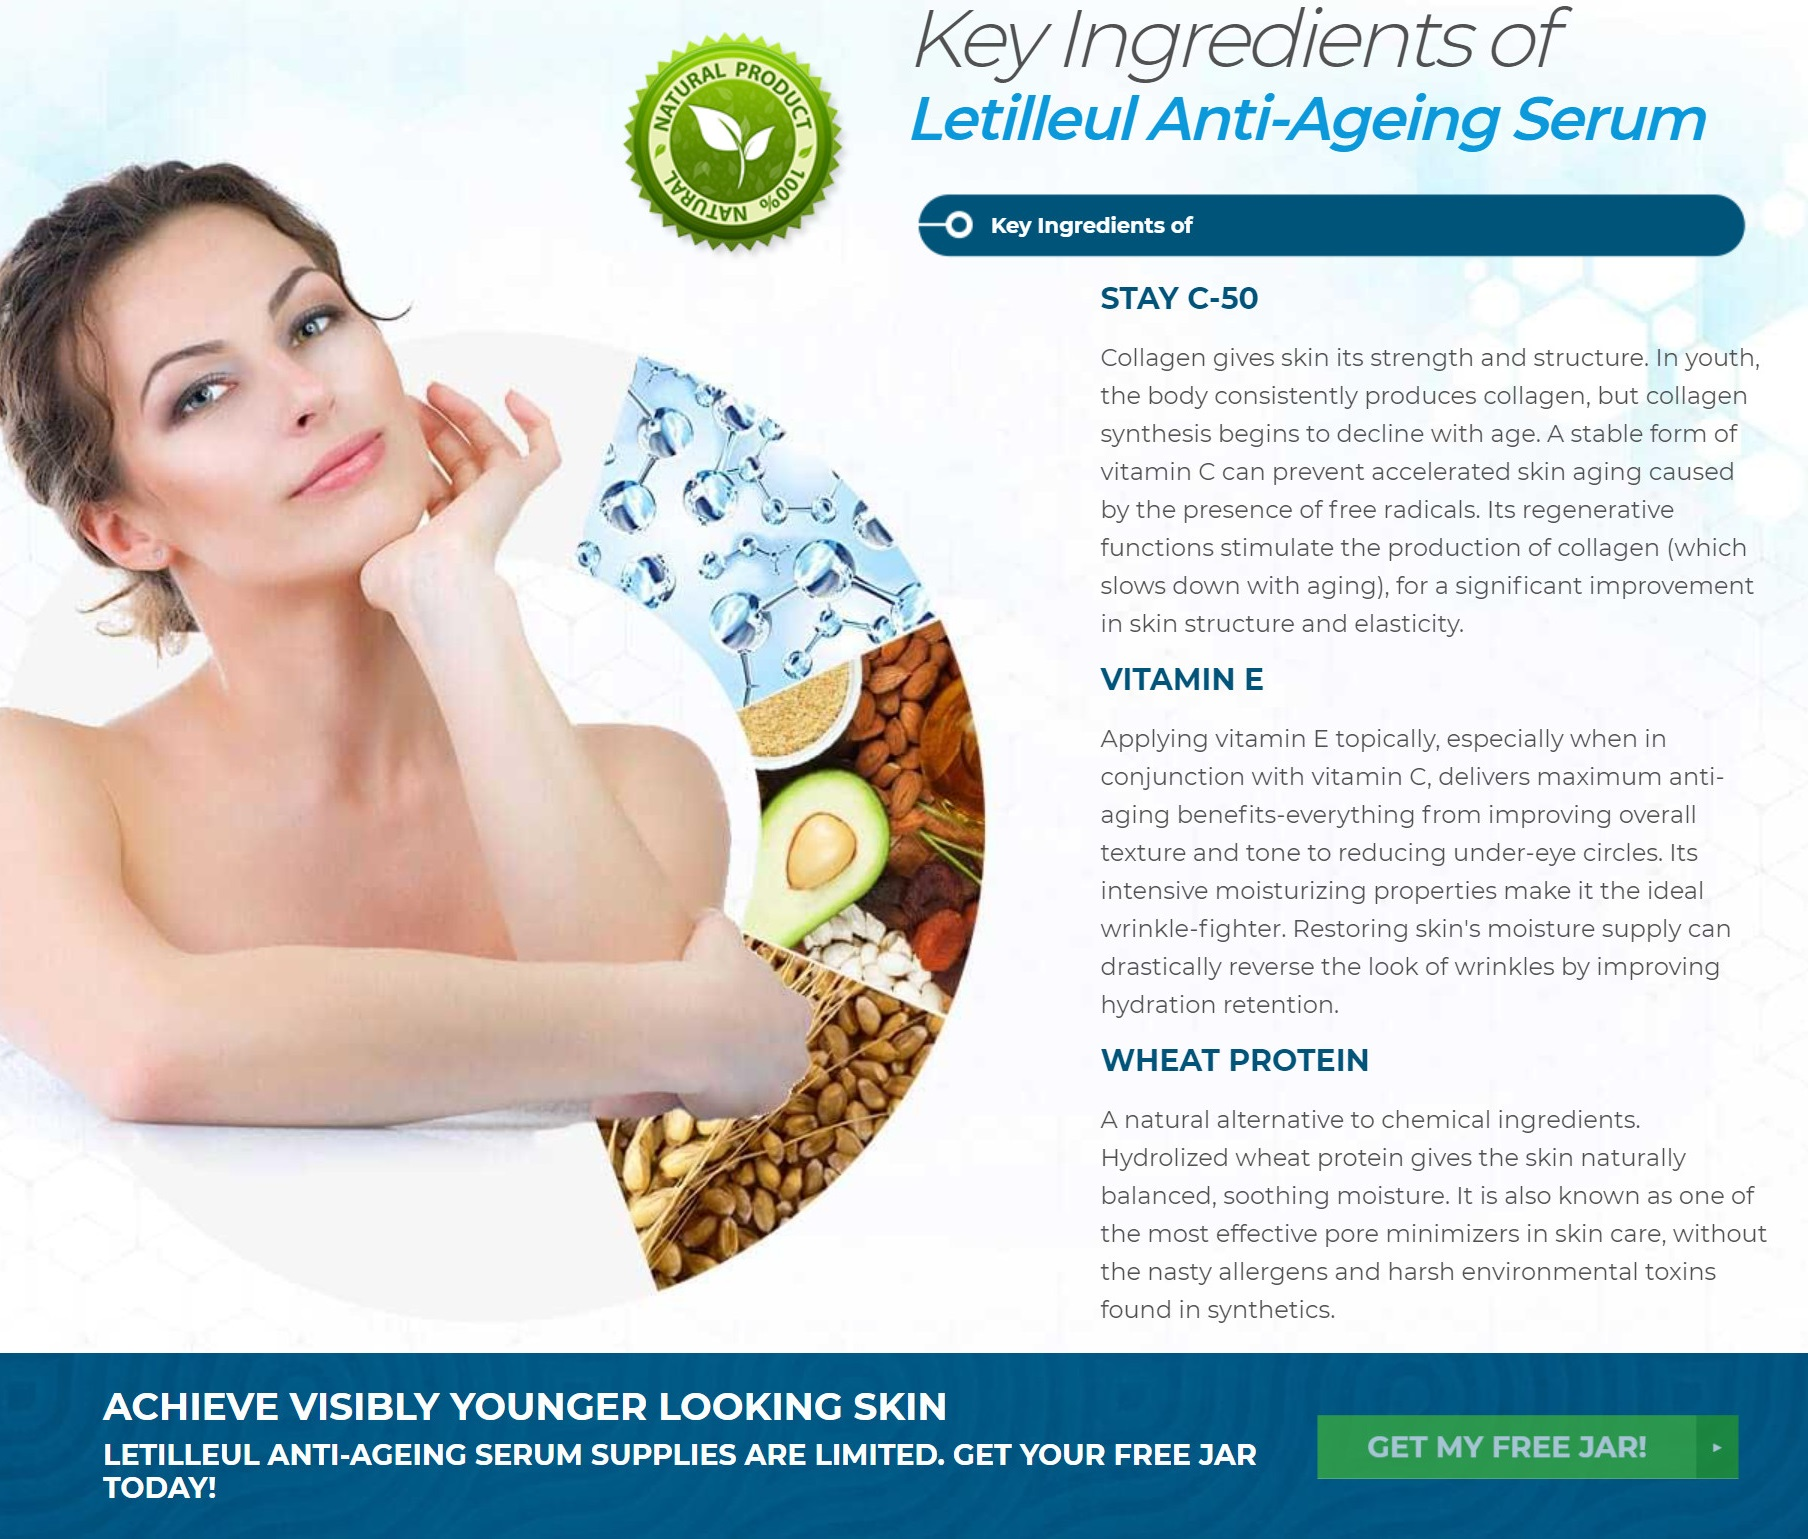 Letilleul Serum Ingredients